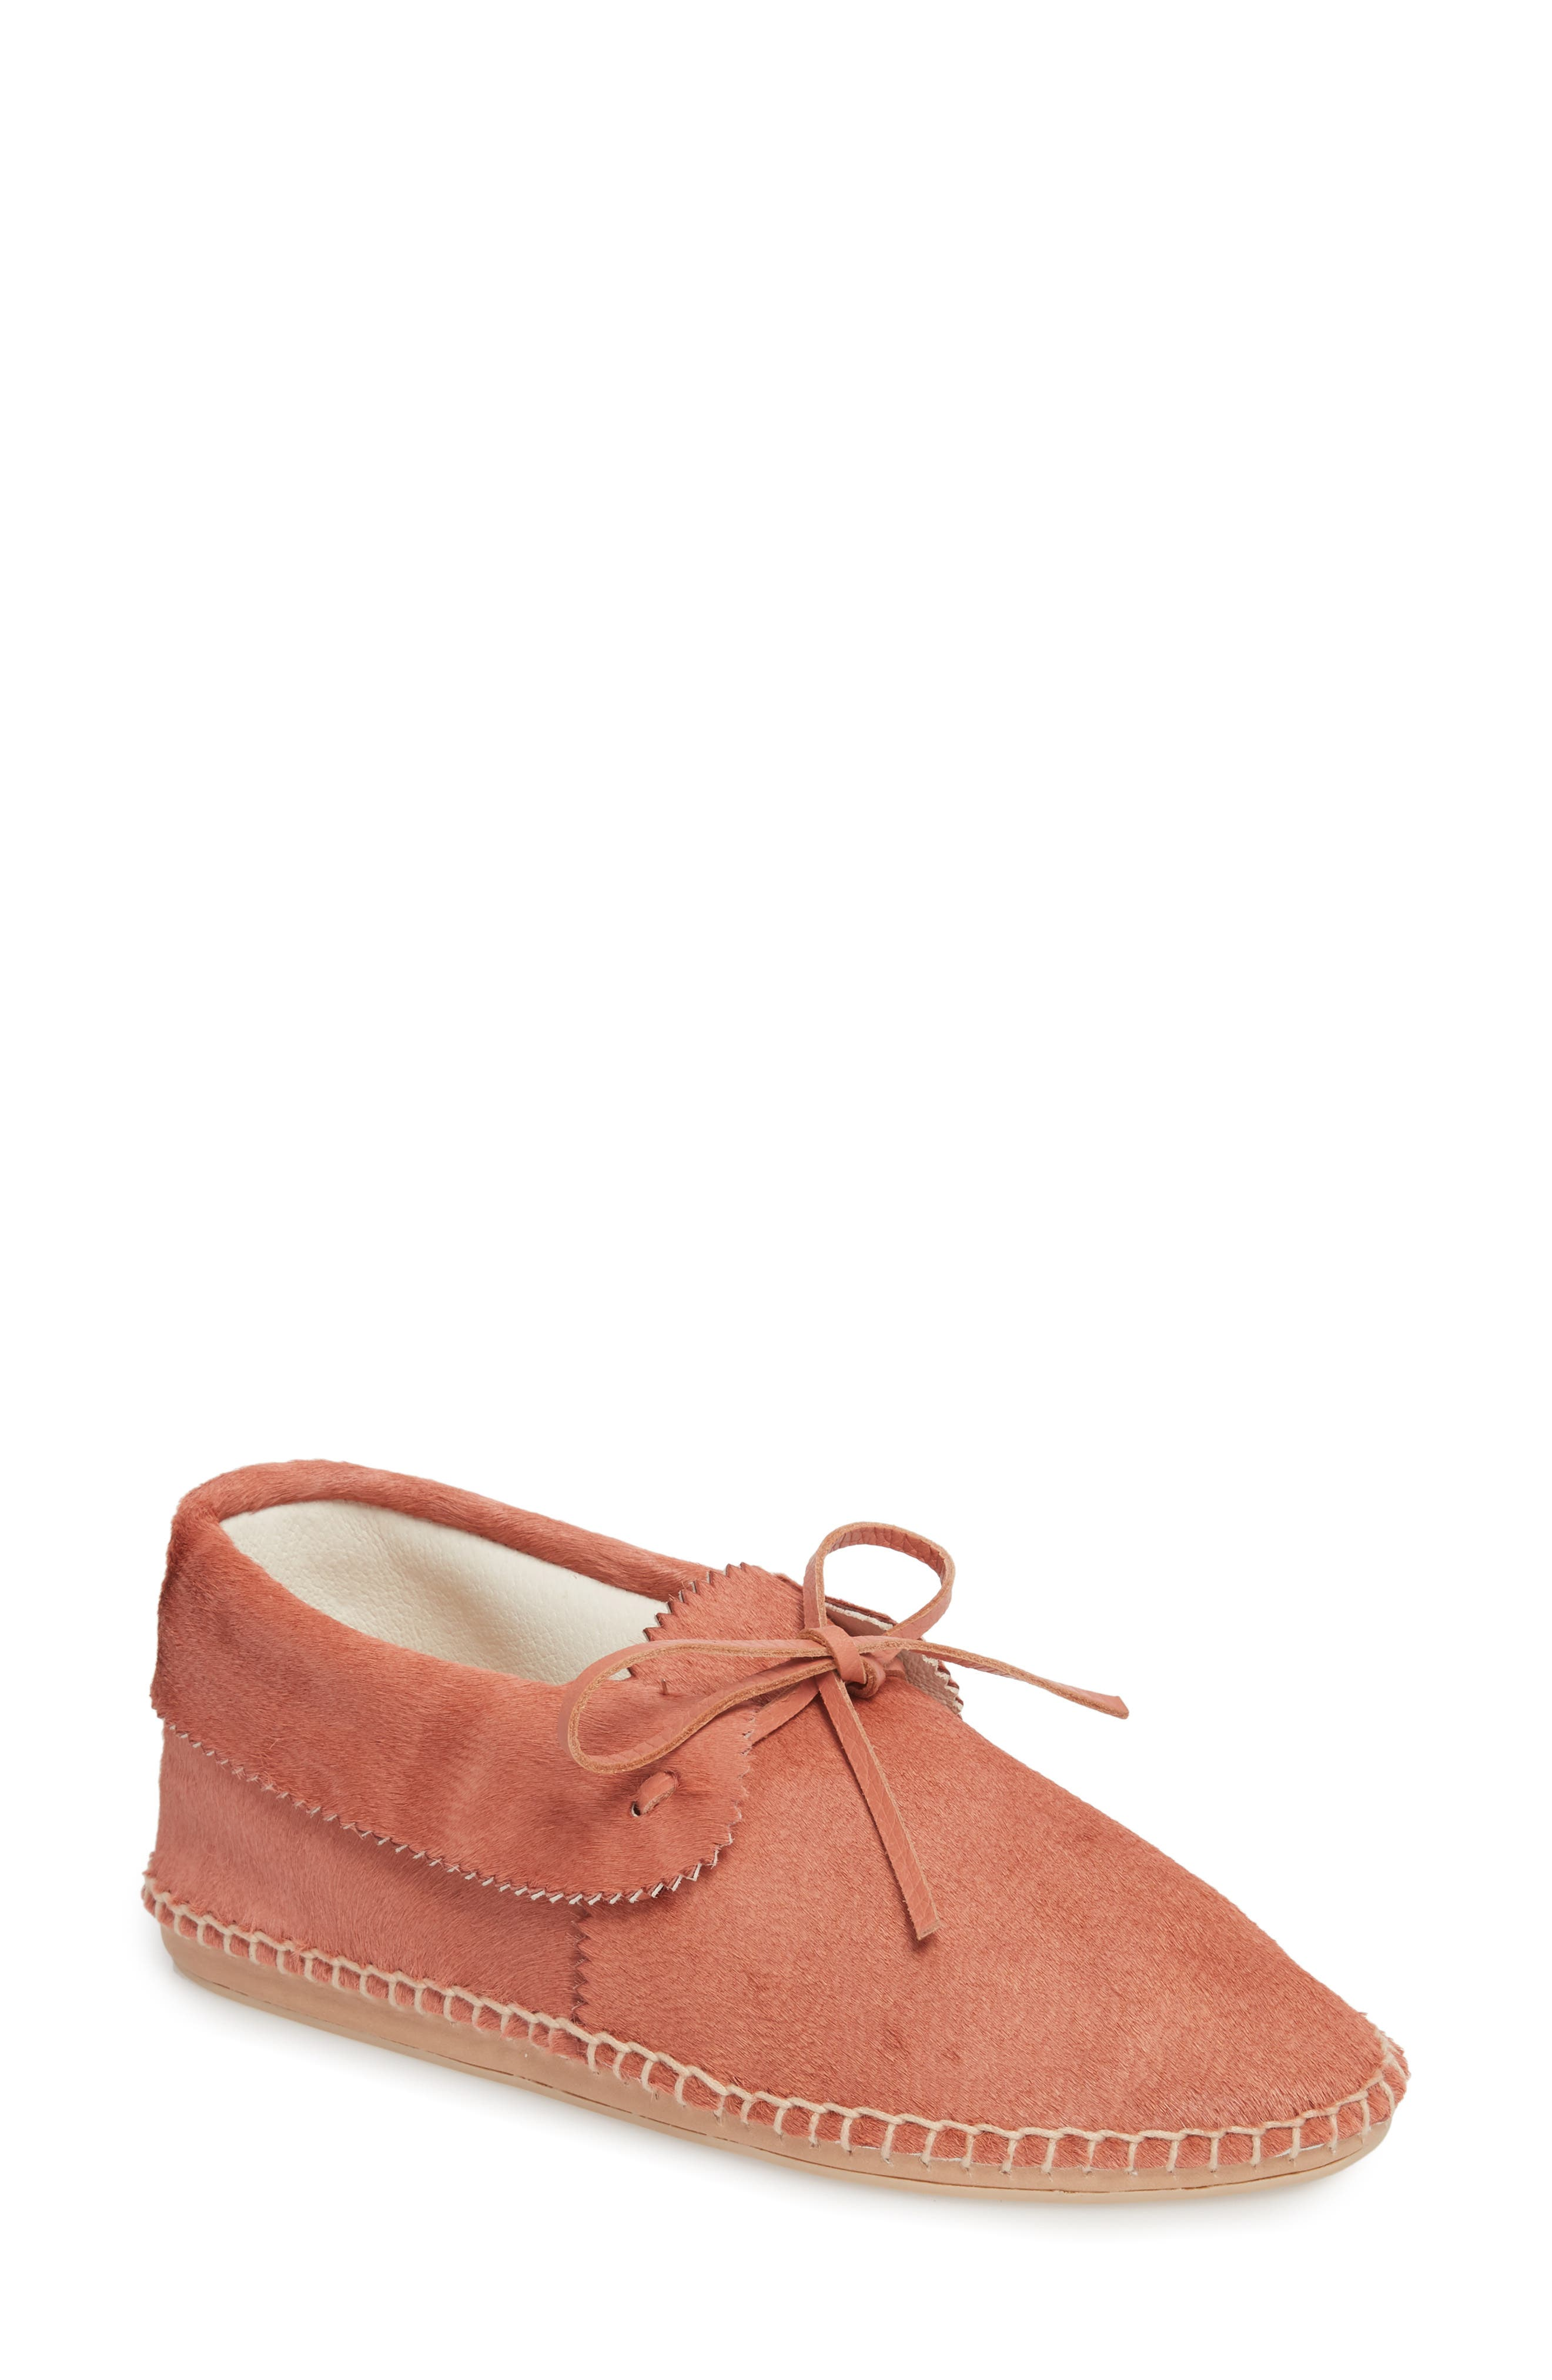 CANYON MOCCASIN FLAT